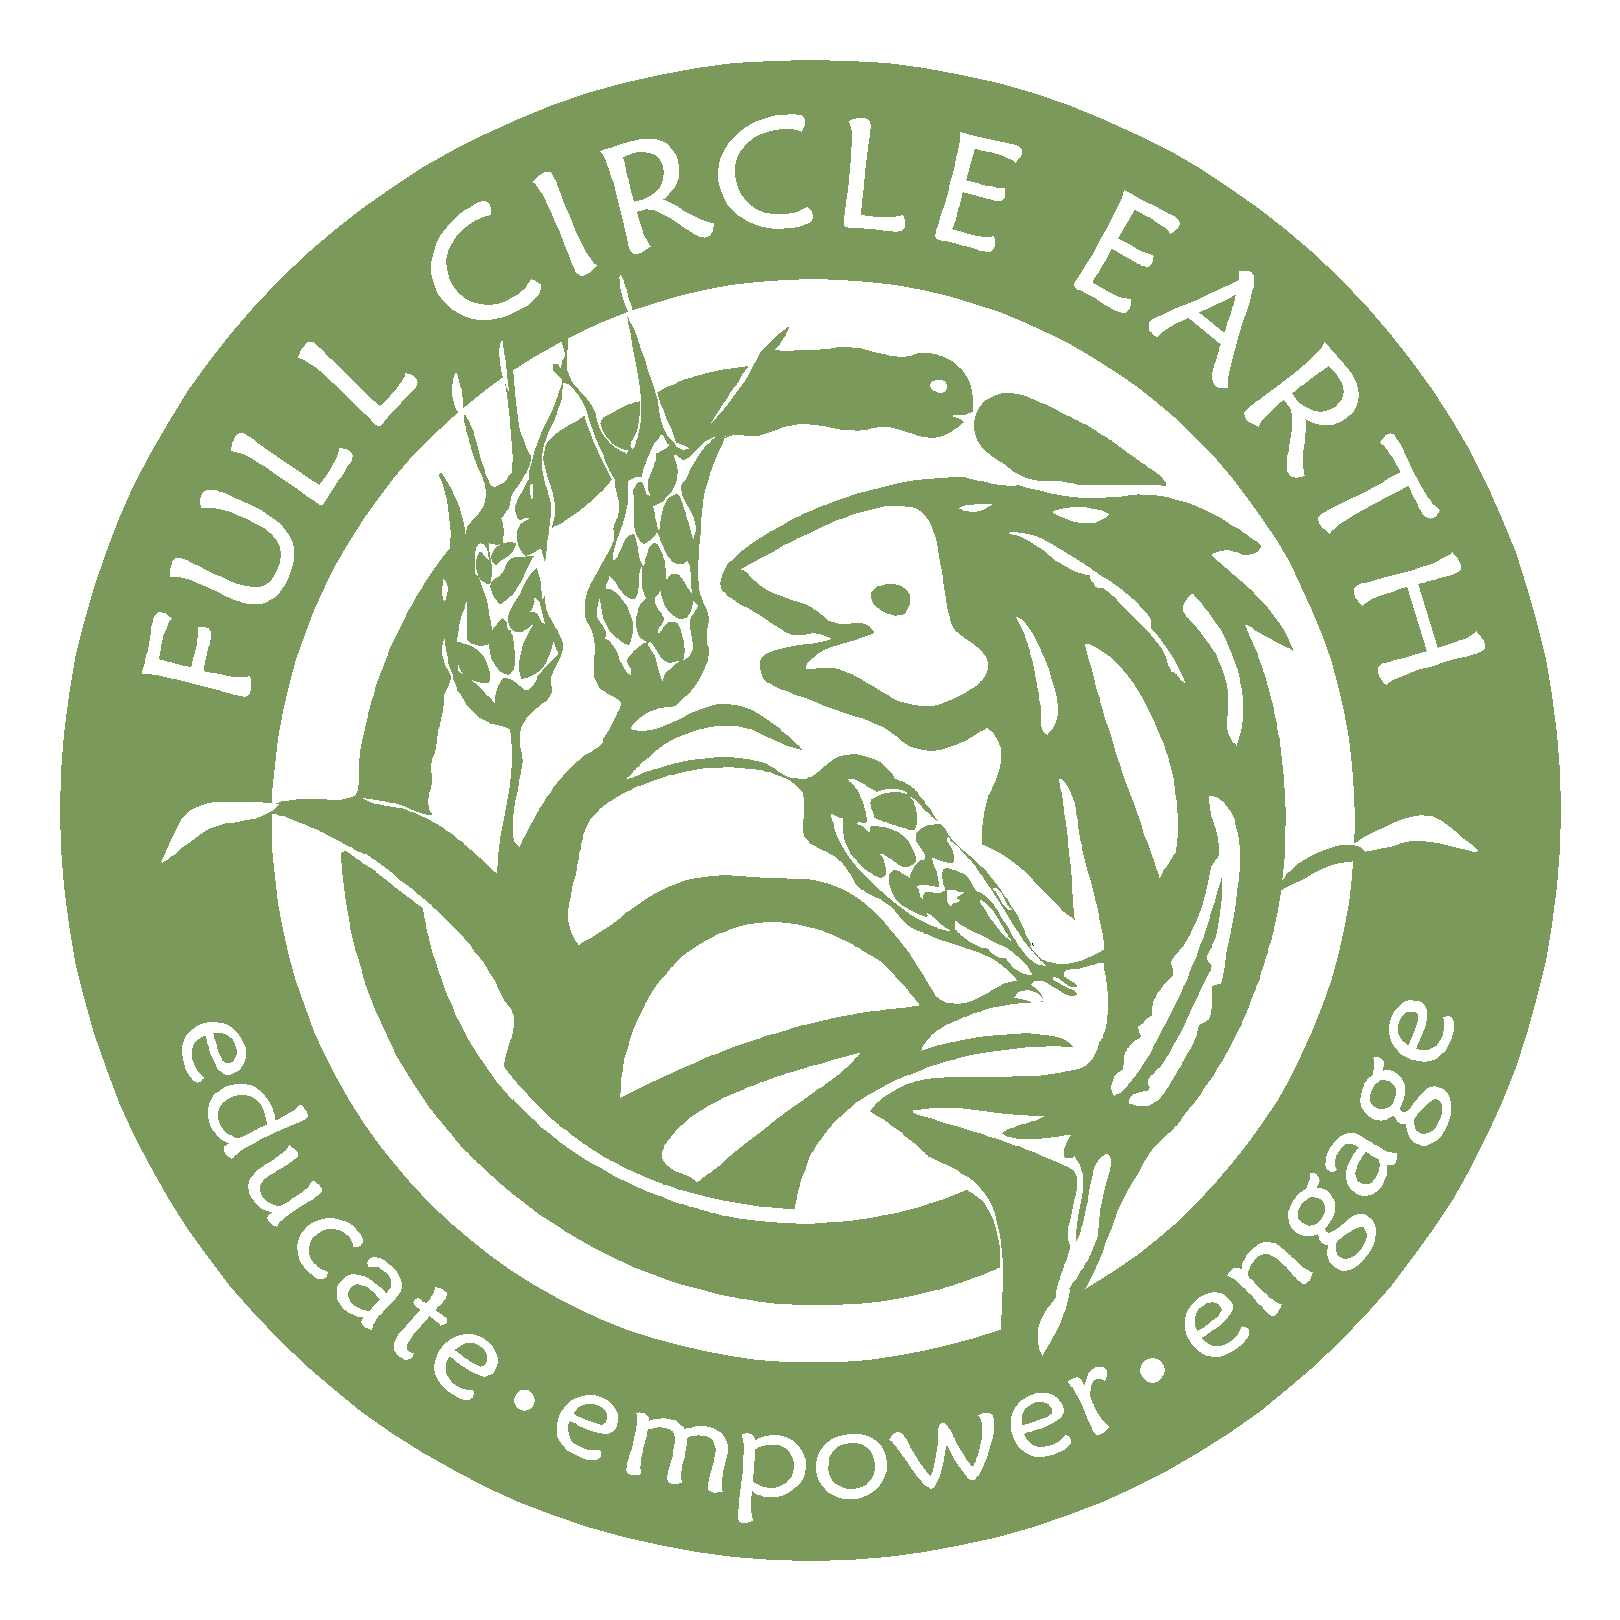 FULL CIRCLE EARTH SAGE.jpg